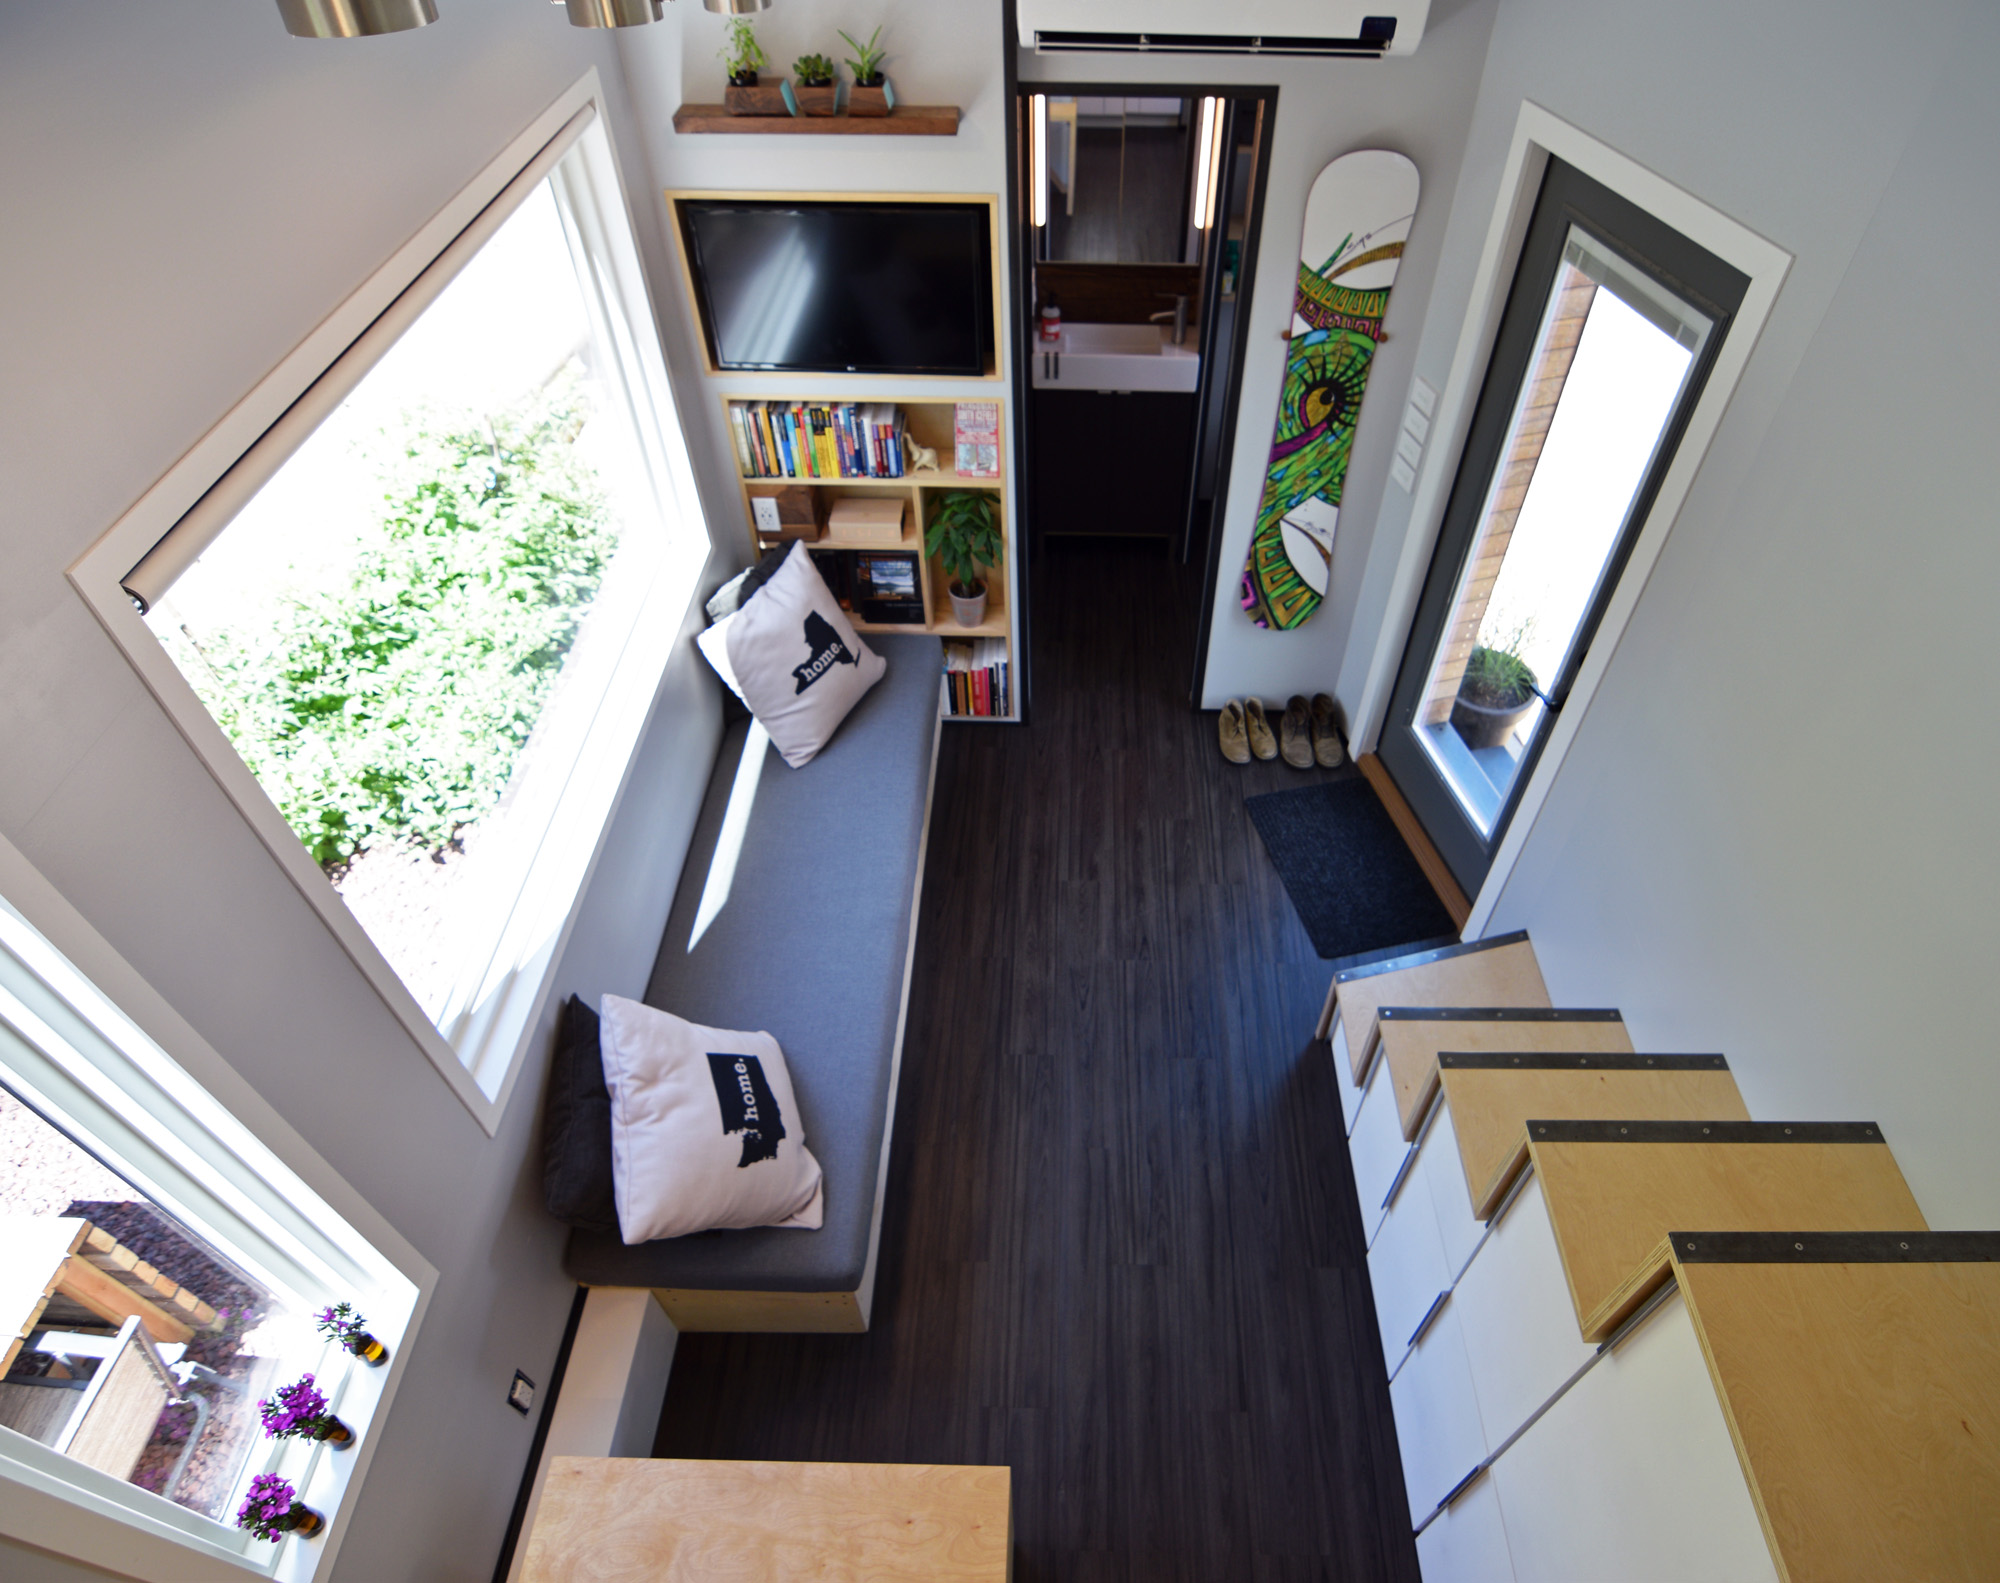 shedsistence-tiny-house-d-i-y-modern-minimalist-interior-design